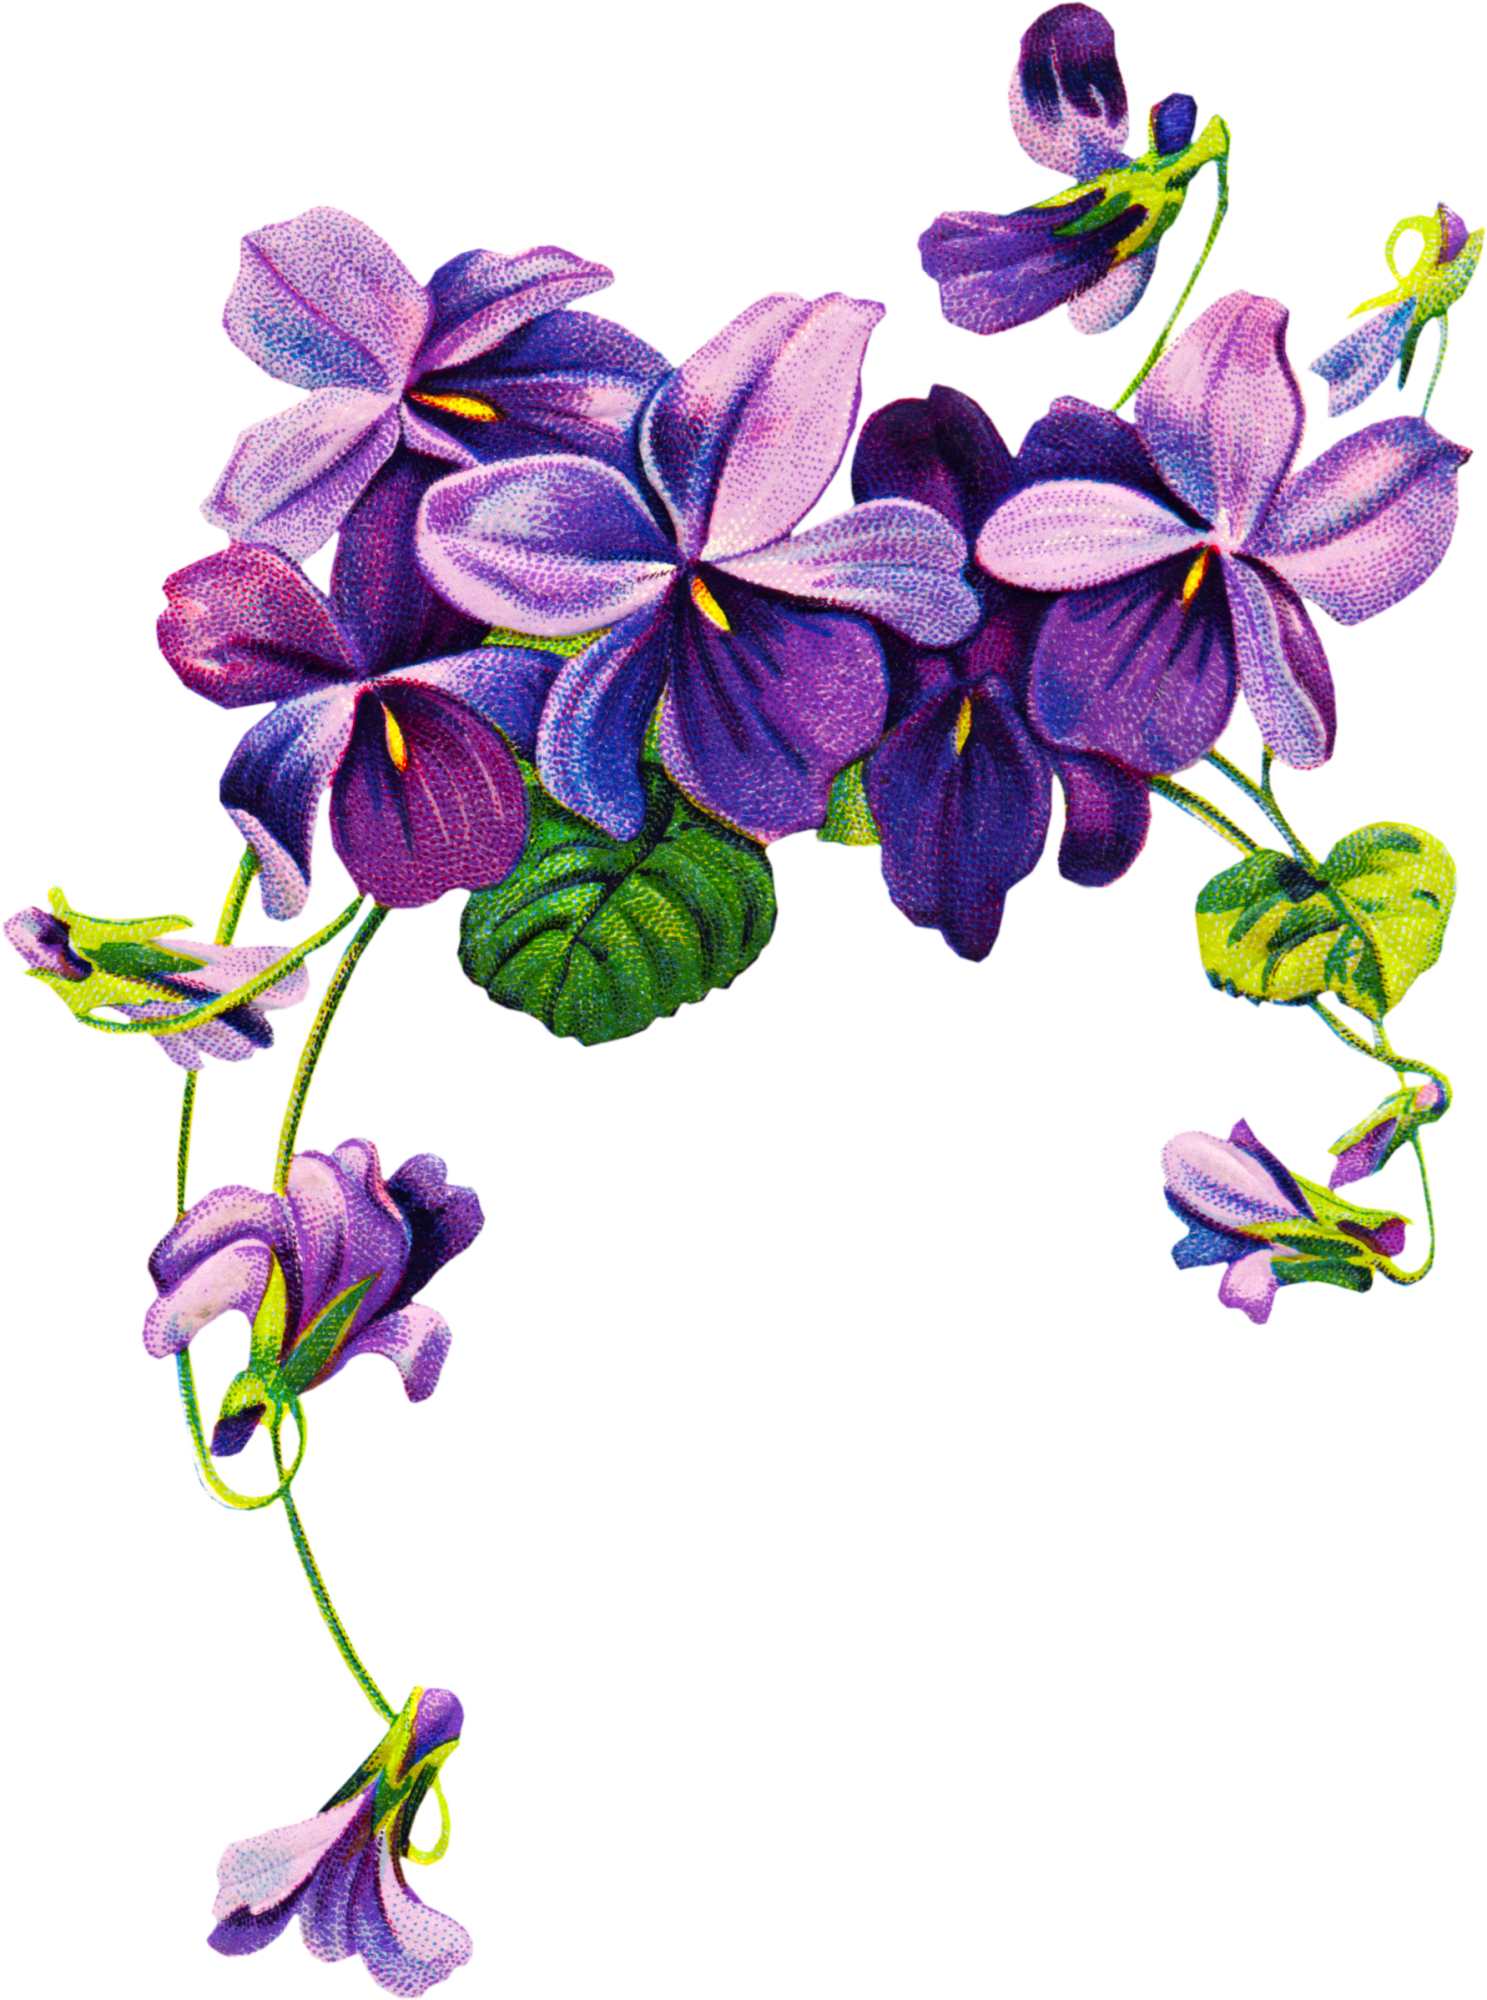 Drawing at getdrawings com. Vines clipart purple flower